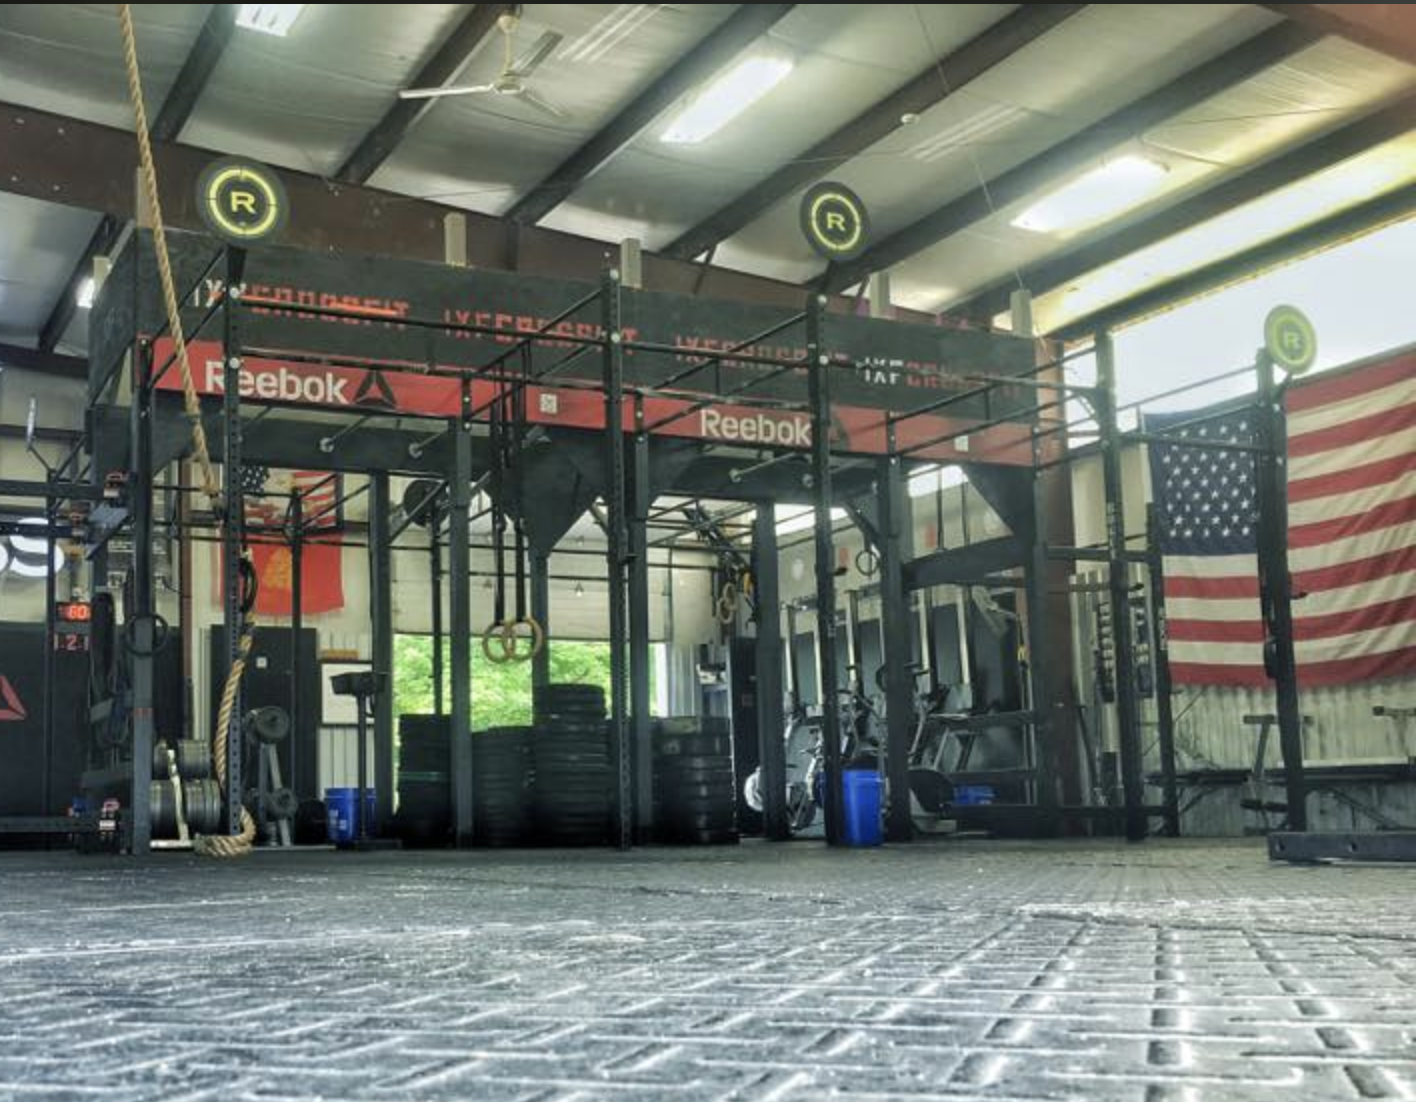 image of a gym with pull up racks and black mat floor